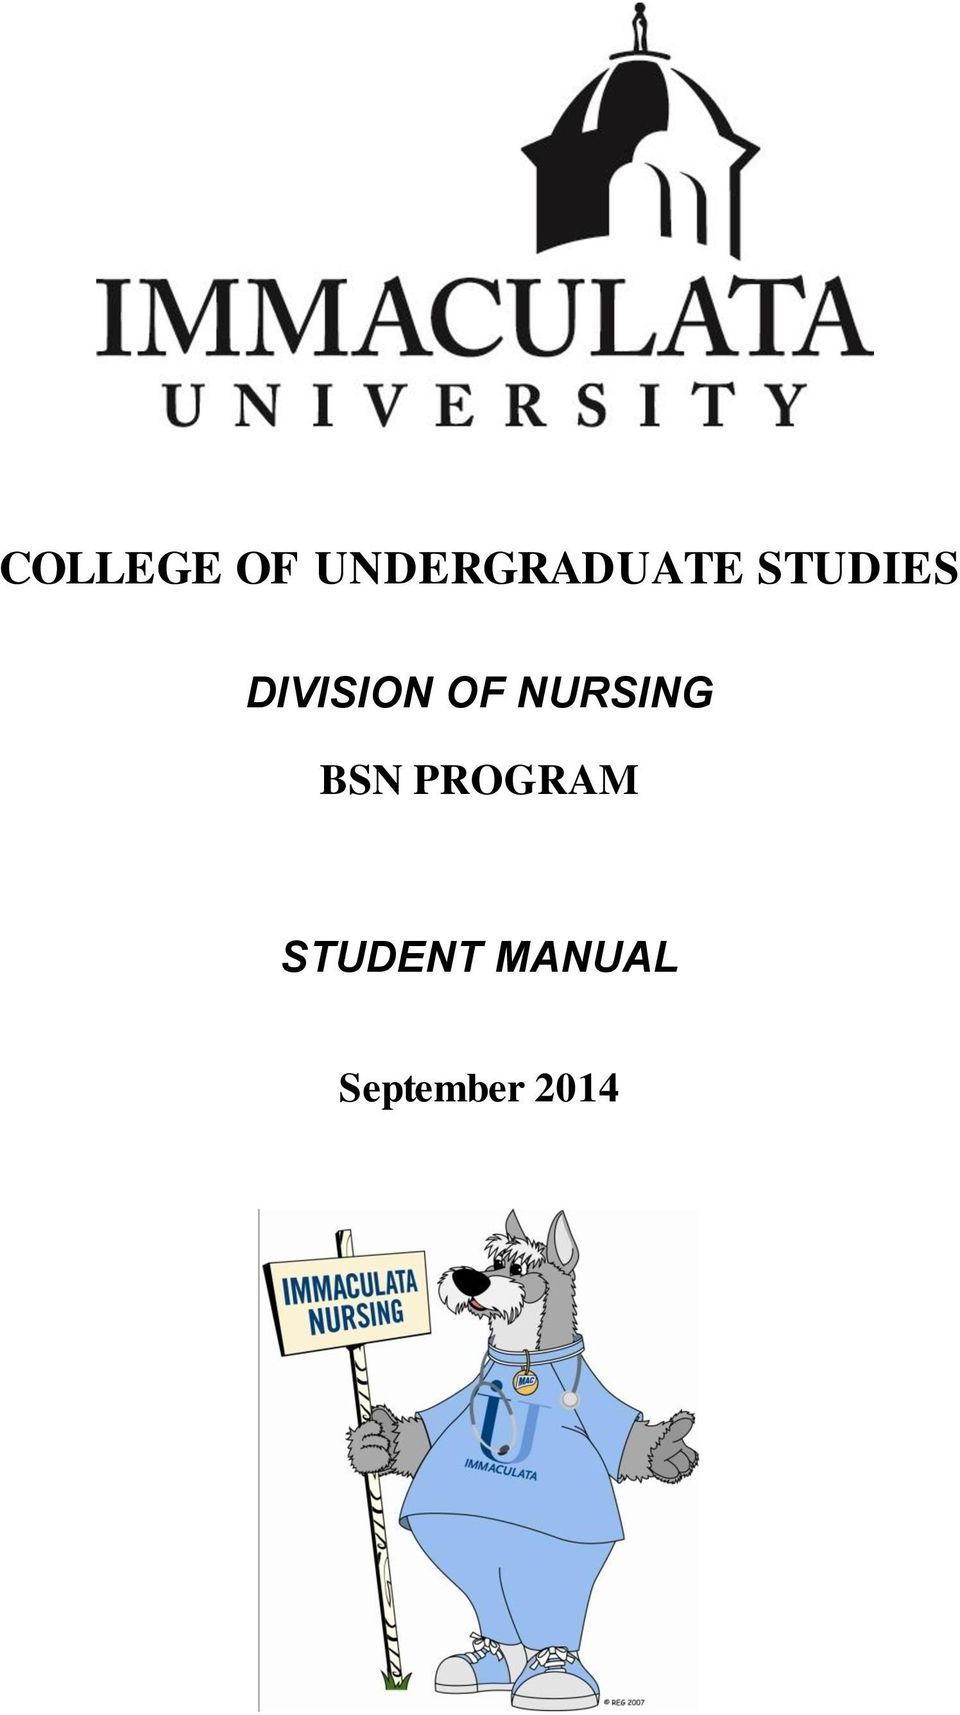 DIVISION OF NURSING BSN